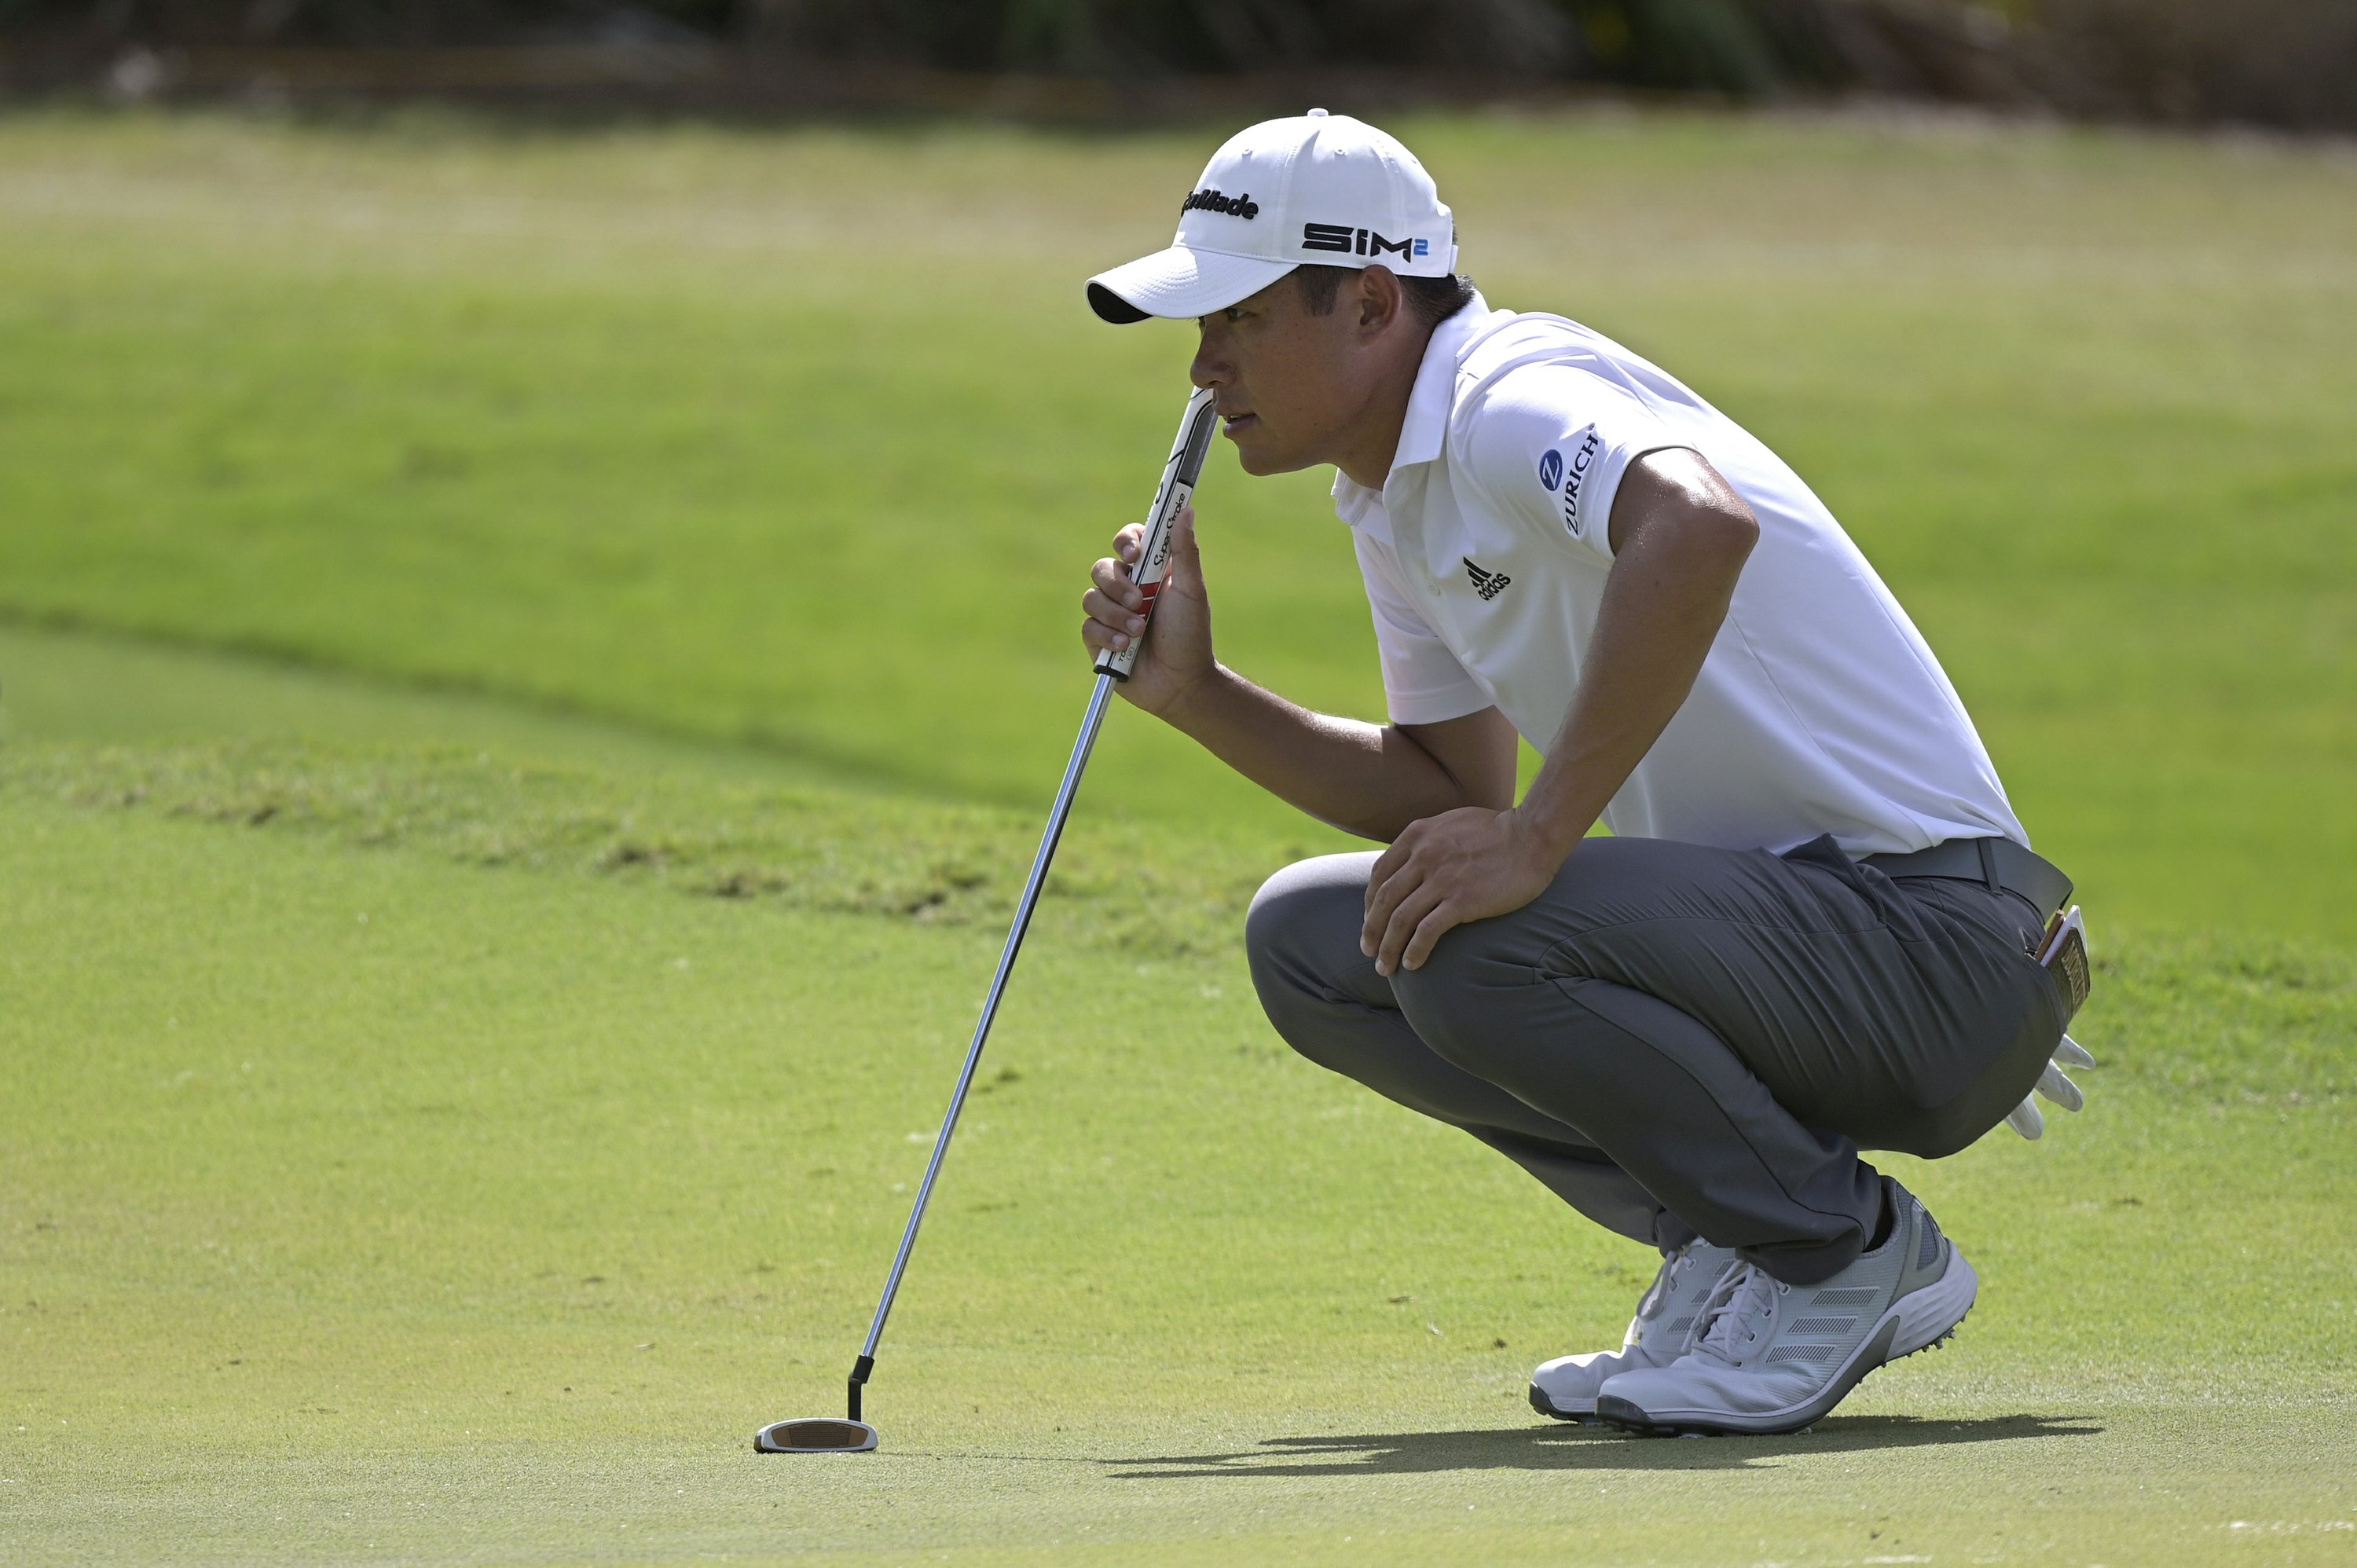 Morikawa's late stumble gives Workday contenders a chance - The Associated Press